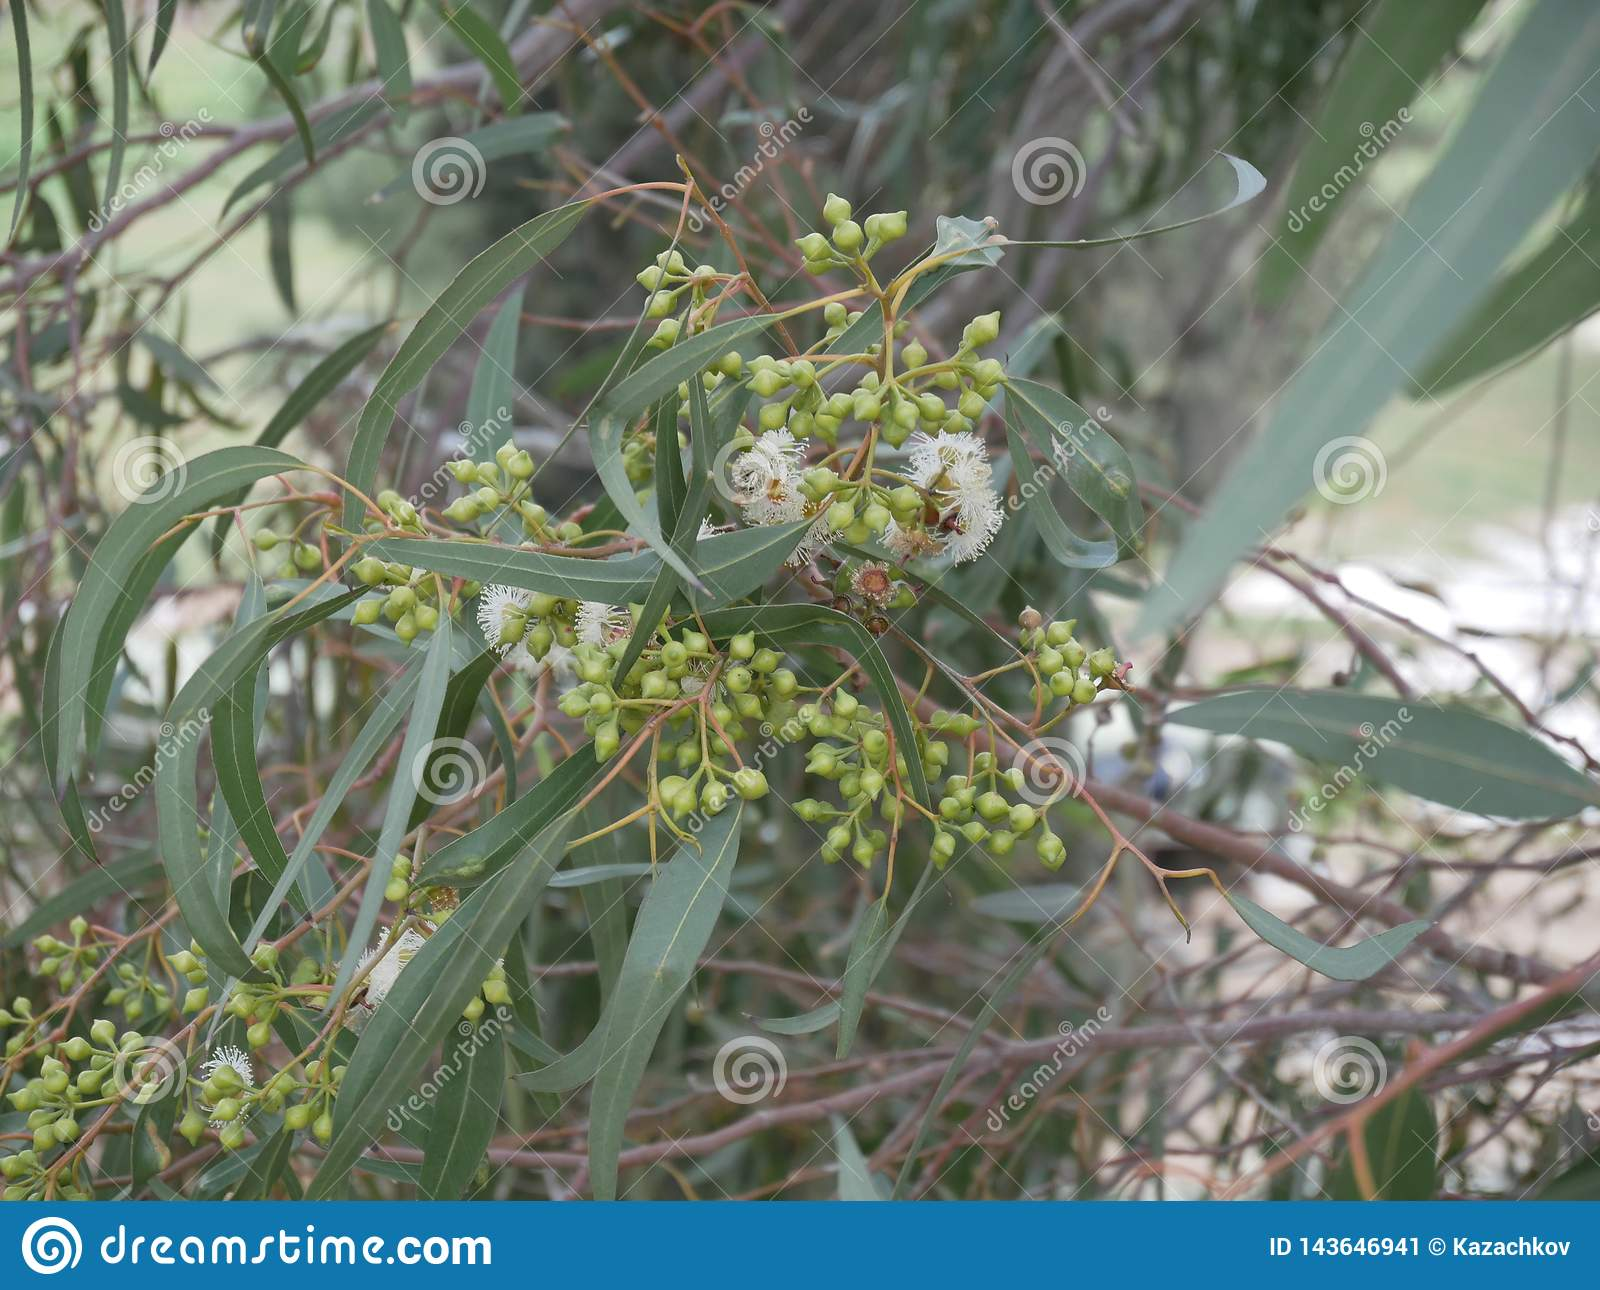 White eucalyptus flowers and new bud on a branch on a spring day. blue-leaved oil mallee. Eucalyptus polybractea.